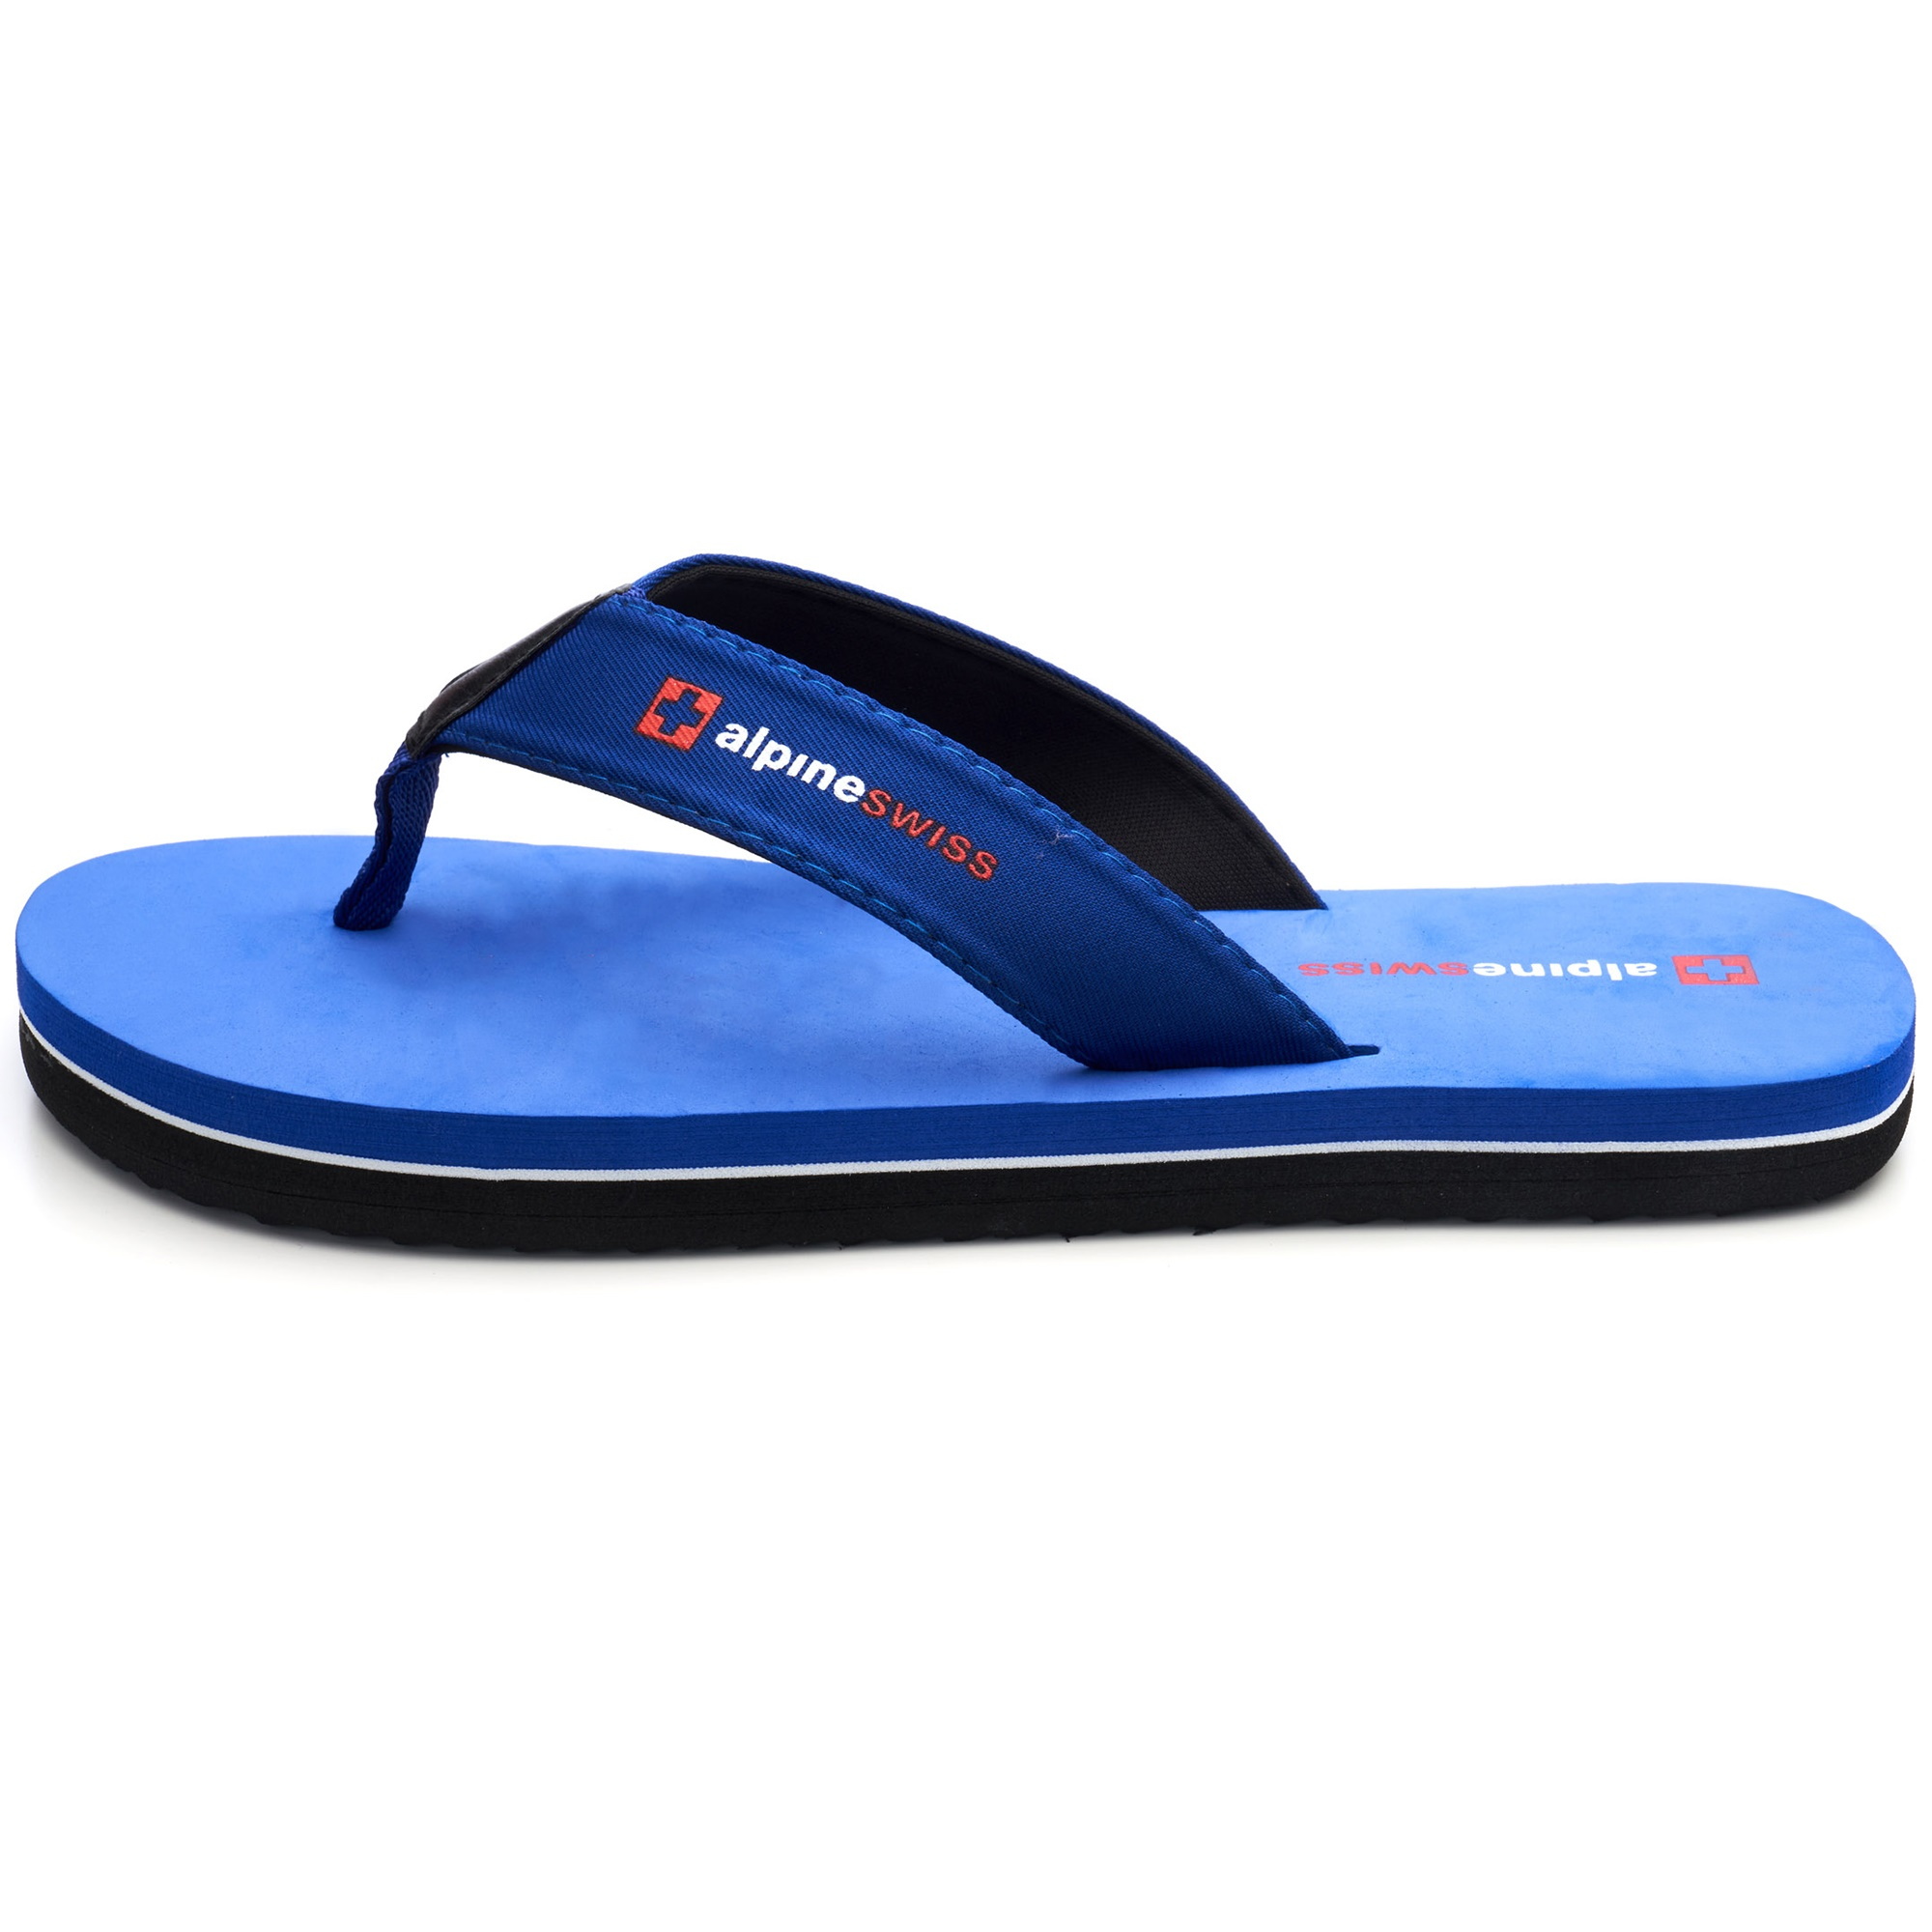 Alpine-Swiss-Mens-Flip-Flops-Beach-Sandals-Lightweight-EVA-Sole-Comfort-Thongs thumbnail 59